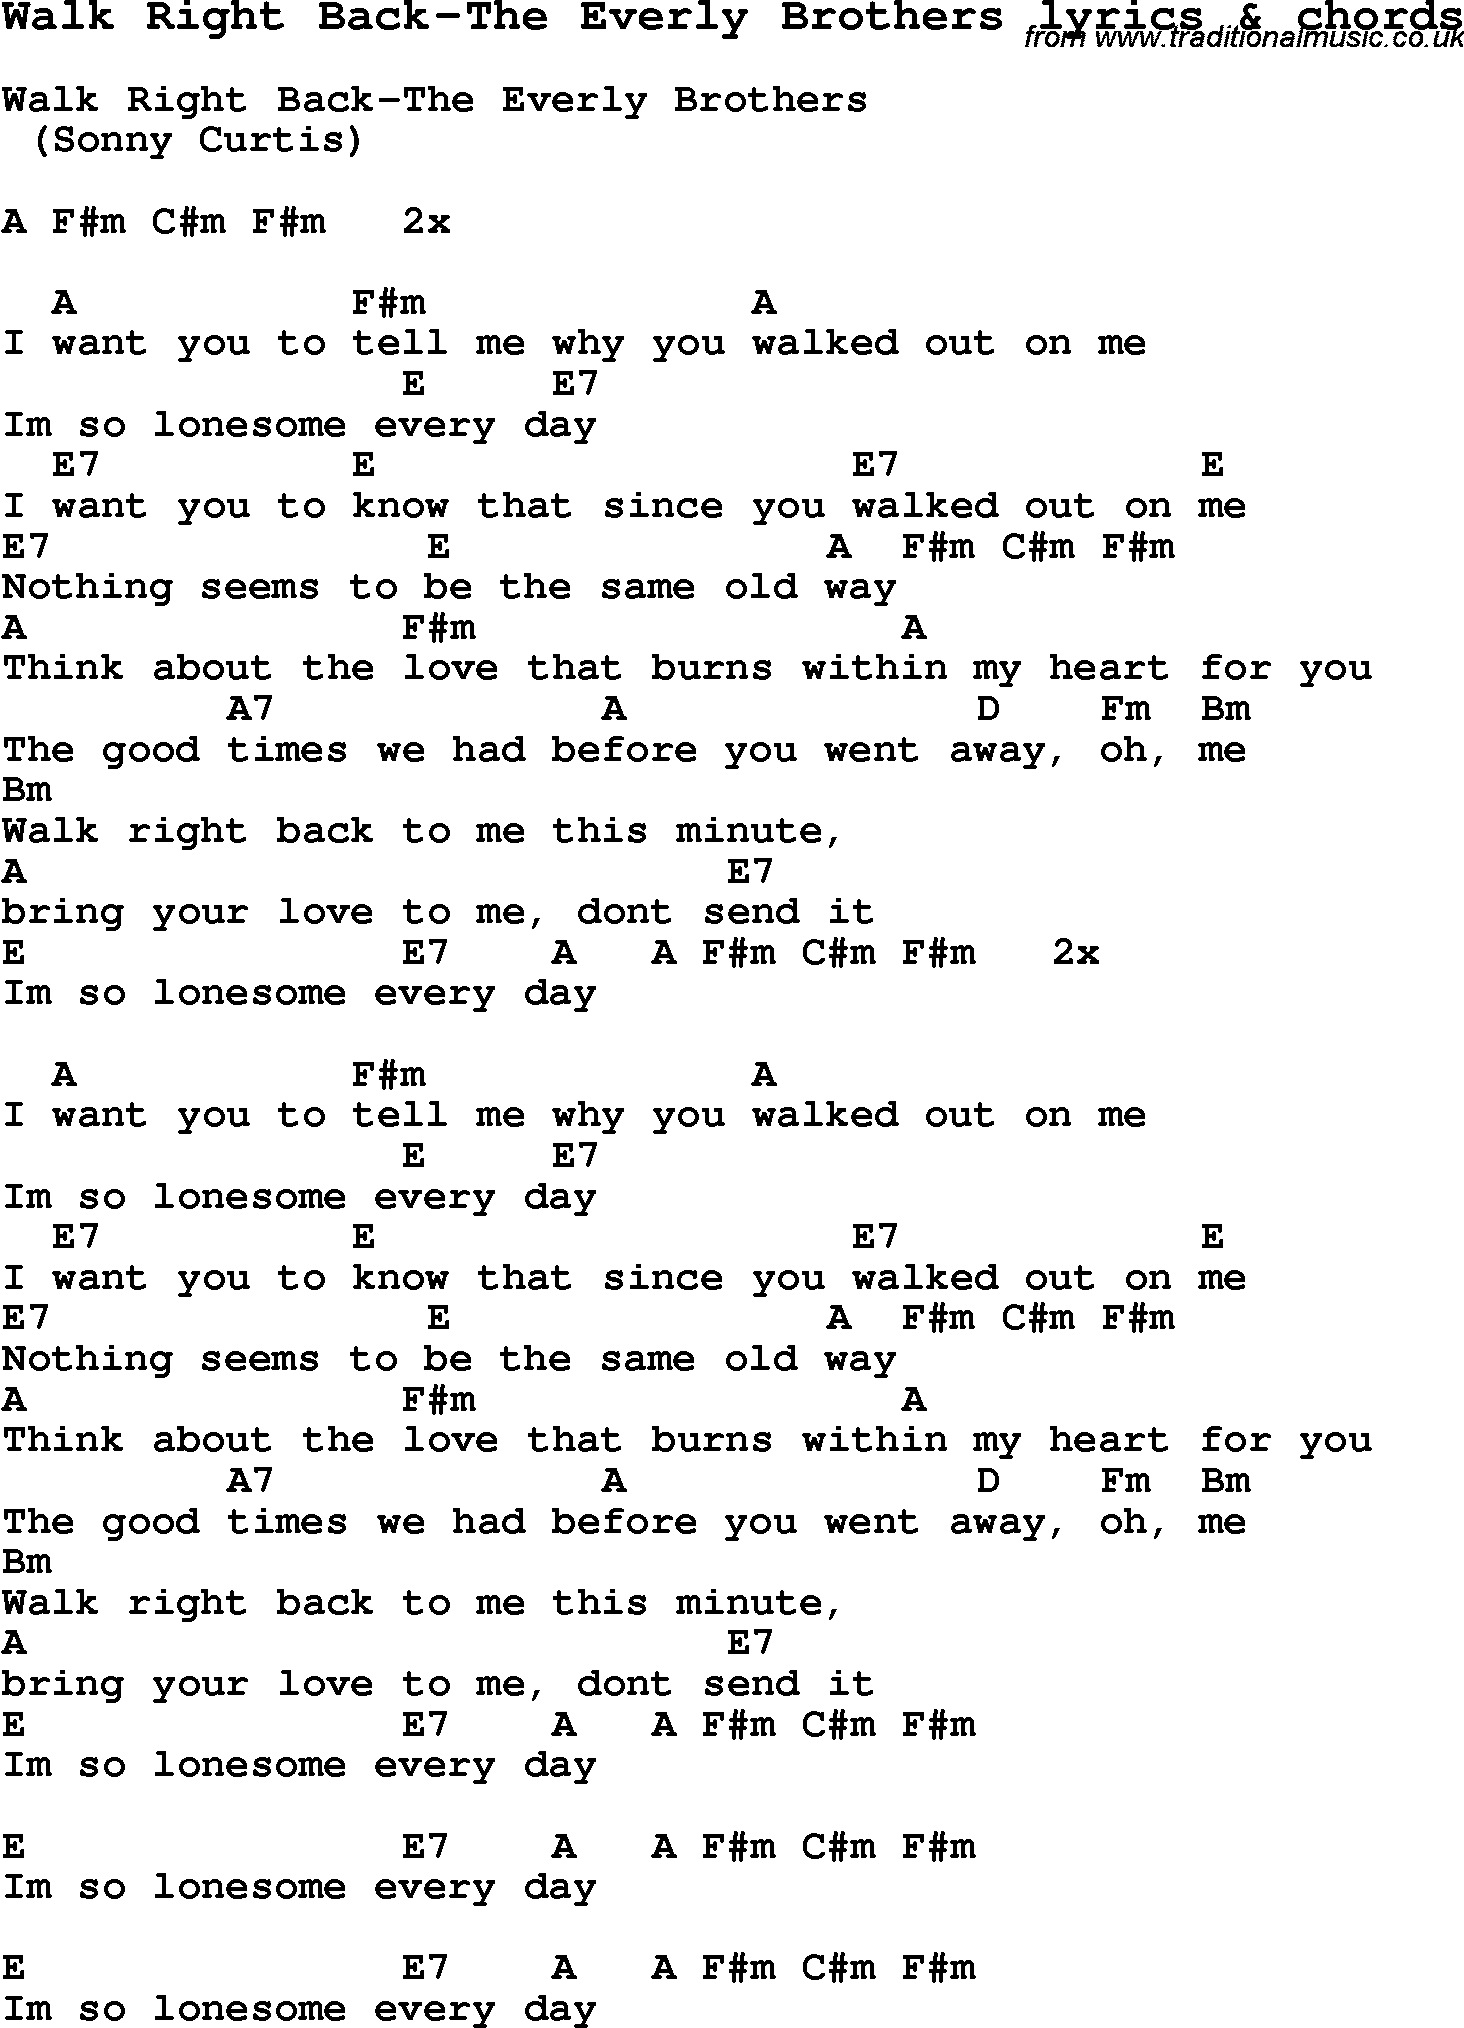 Love Song Lyrics For Walk Right Back The Everly Brothers With Chords